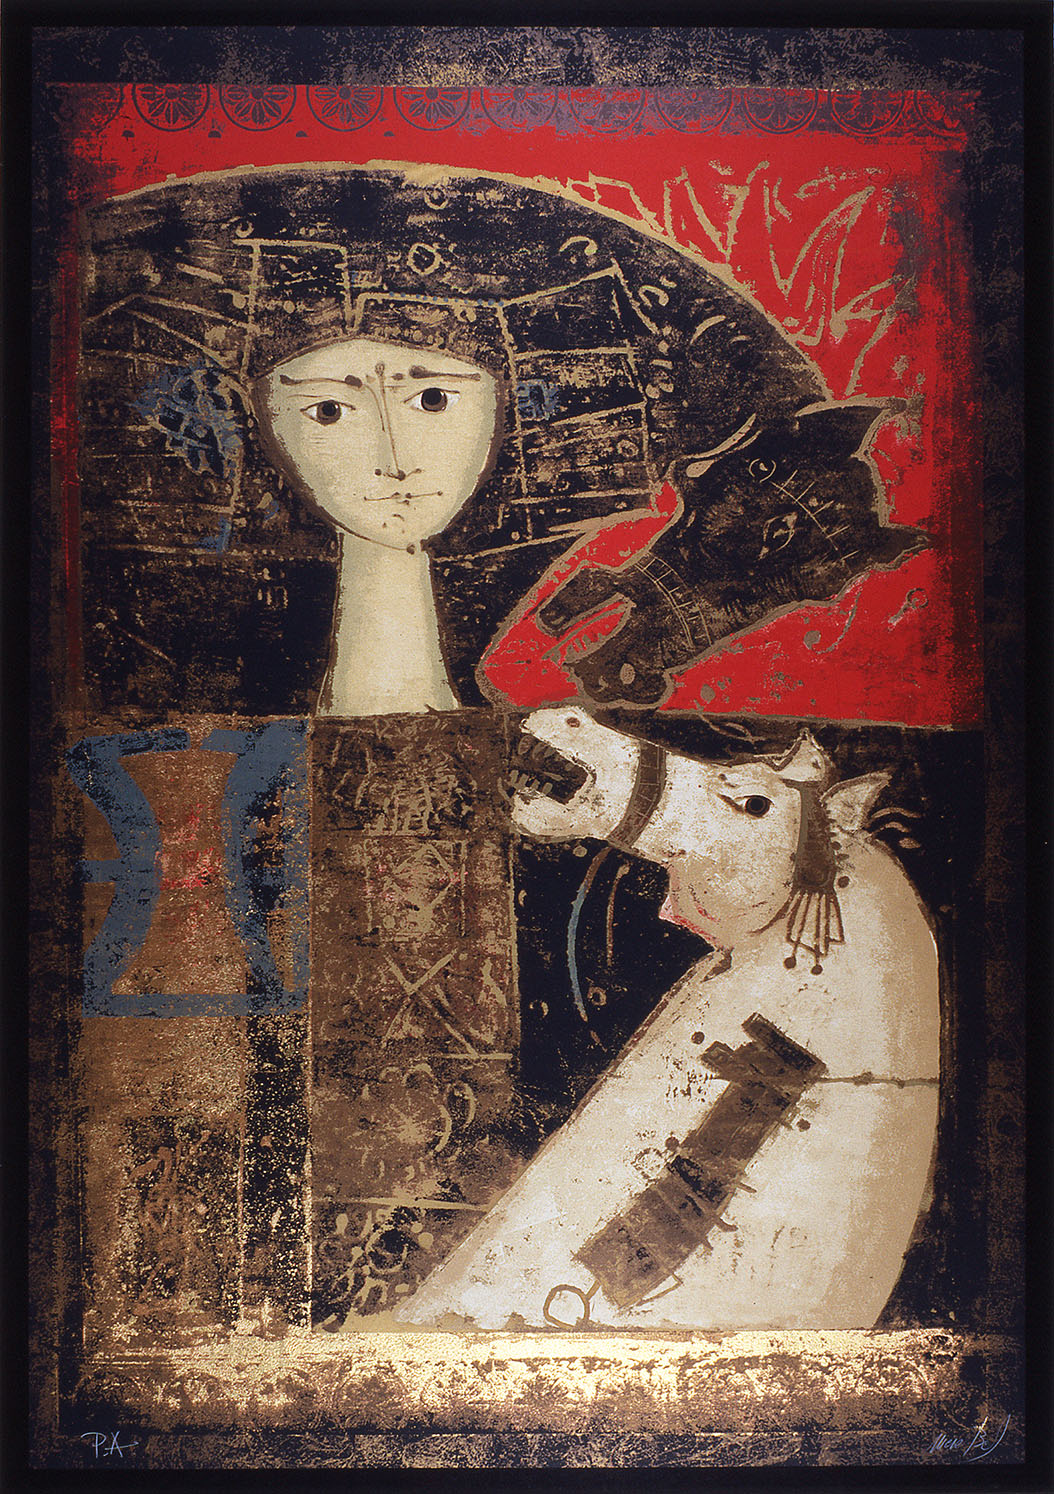 'Due cavalli', 1979, 100 x 70 cm, 19 col. Cat. n.23